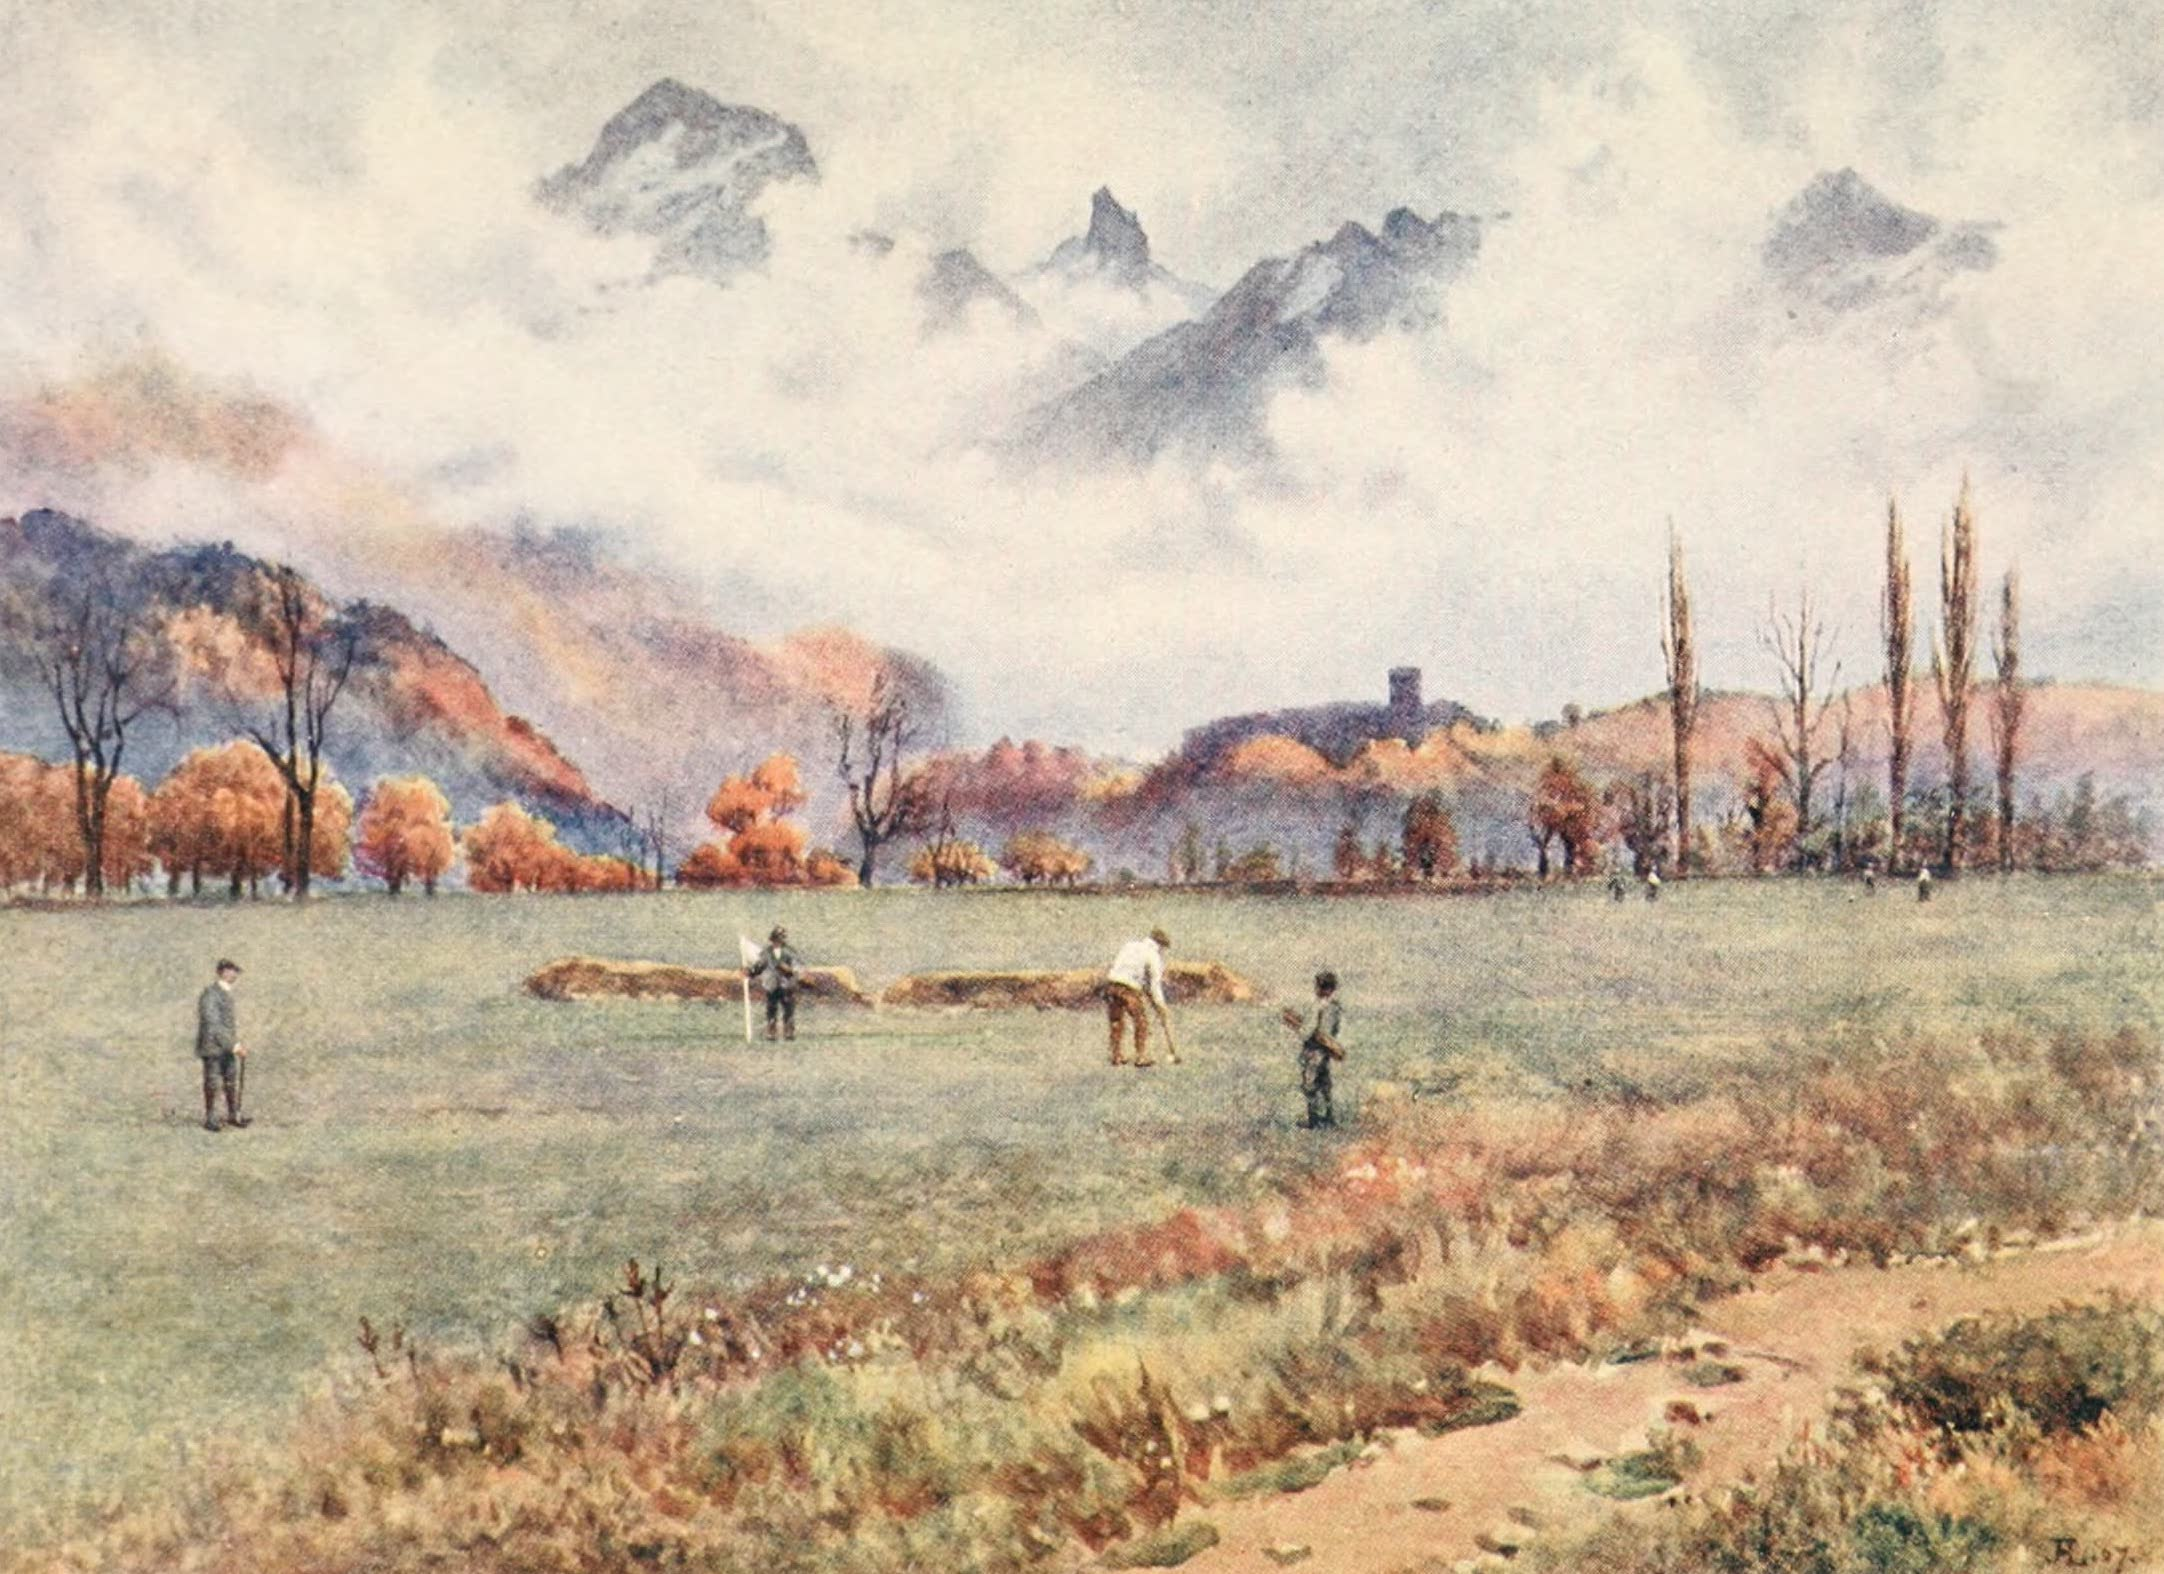 Montreux, Painted and Described - Montreux Golf Club Links at Aigle (1908)